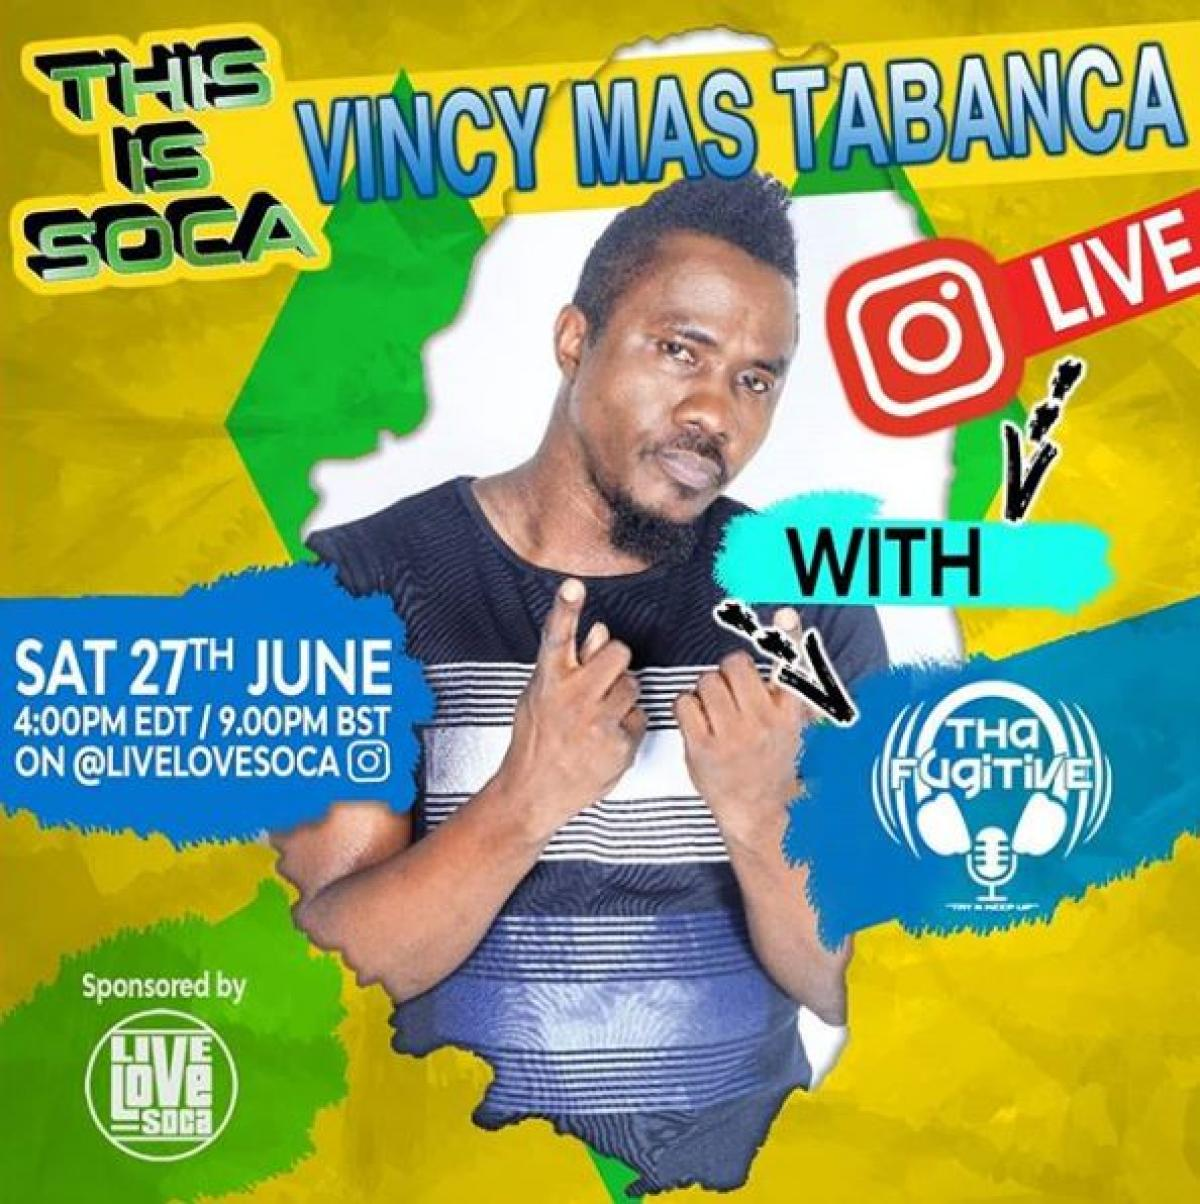 This Is Soca Vincy Mas Tabanca flyer or graphic.